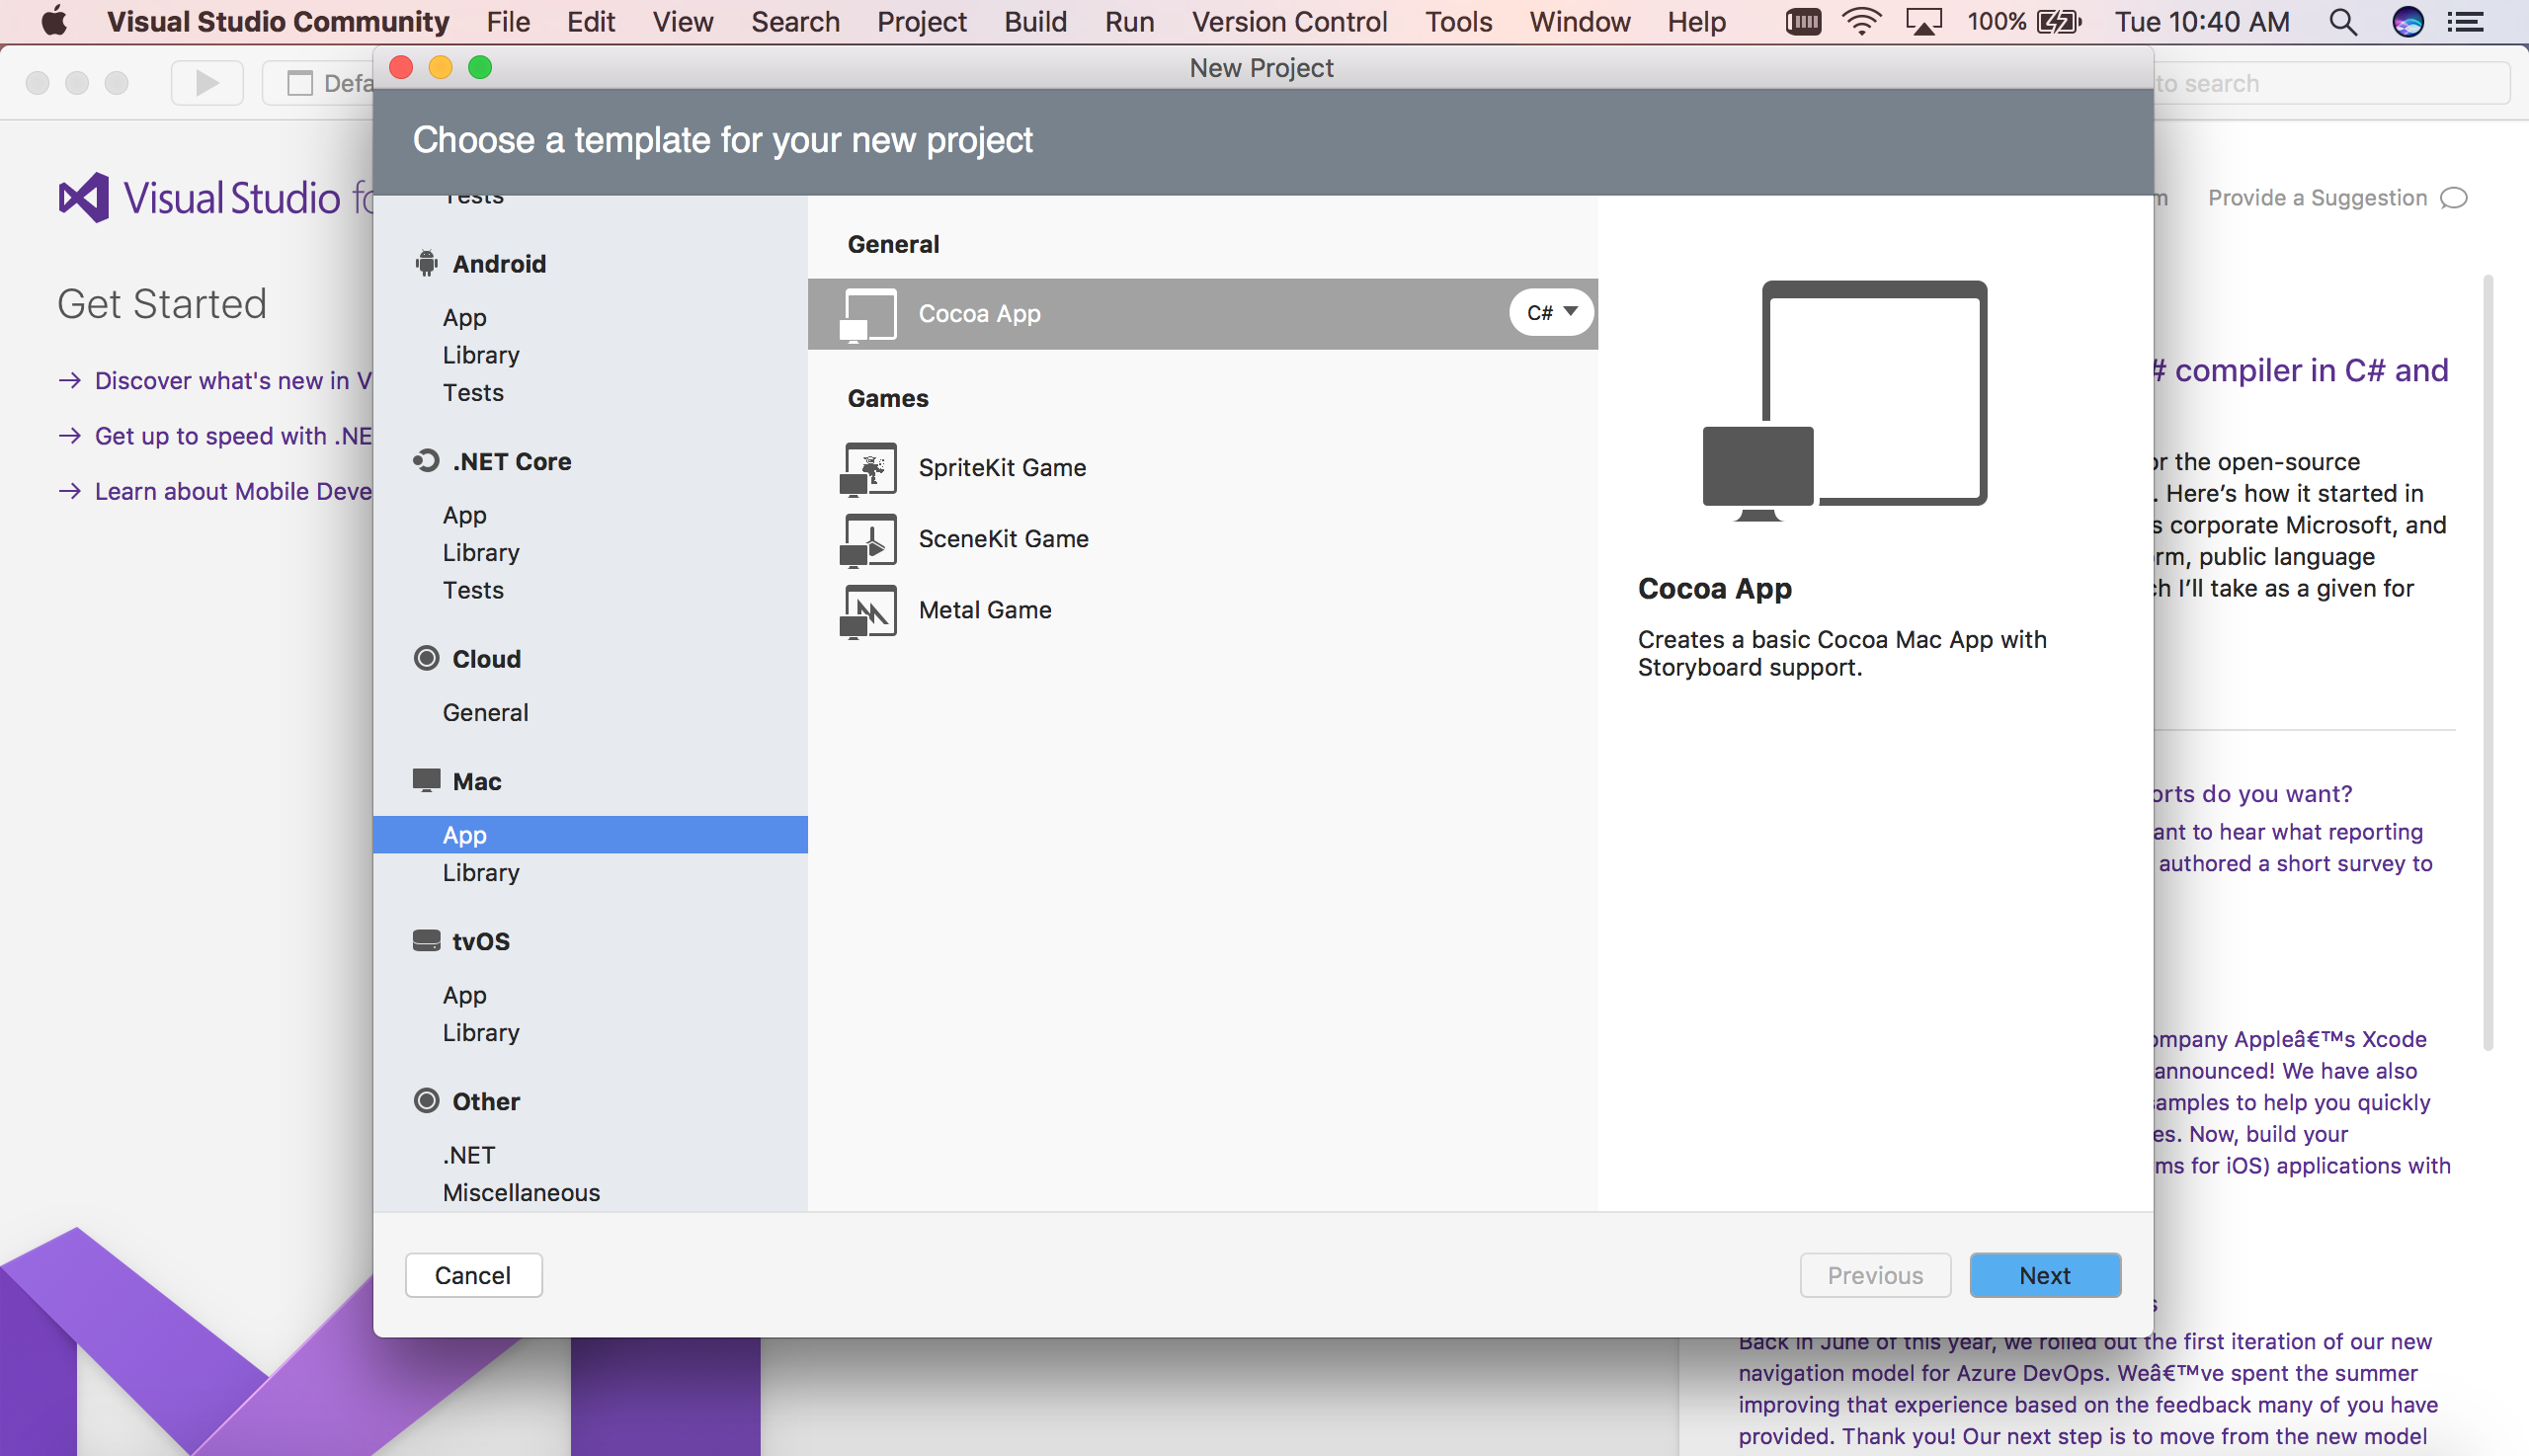 How to Type Accented Characters on Mac the Fast Way